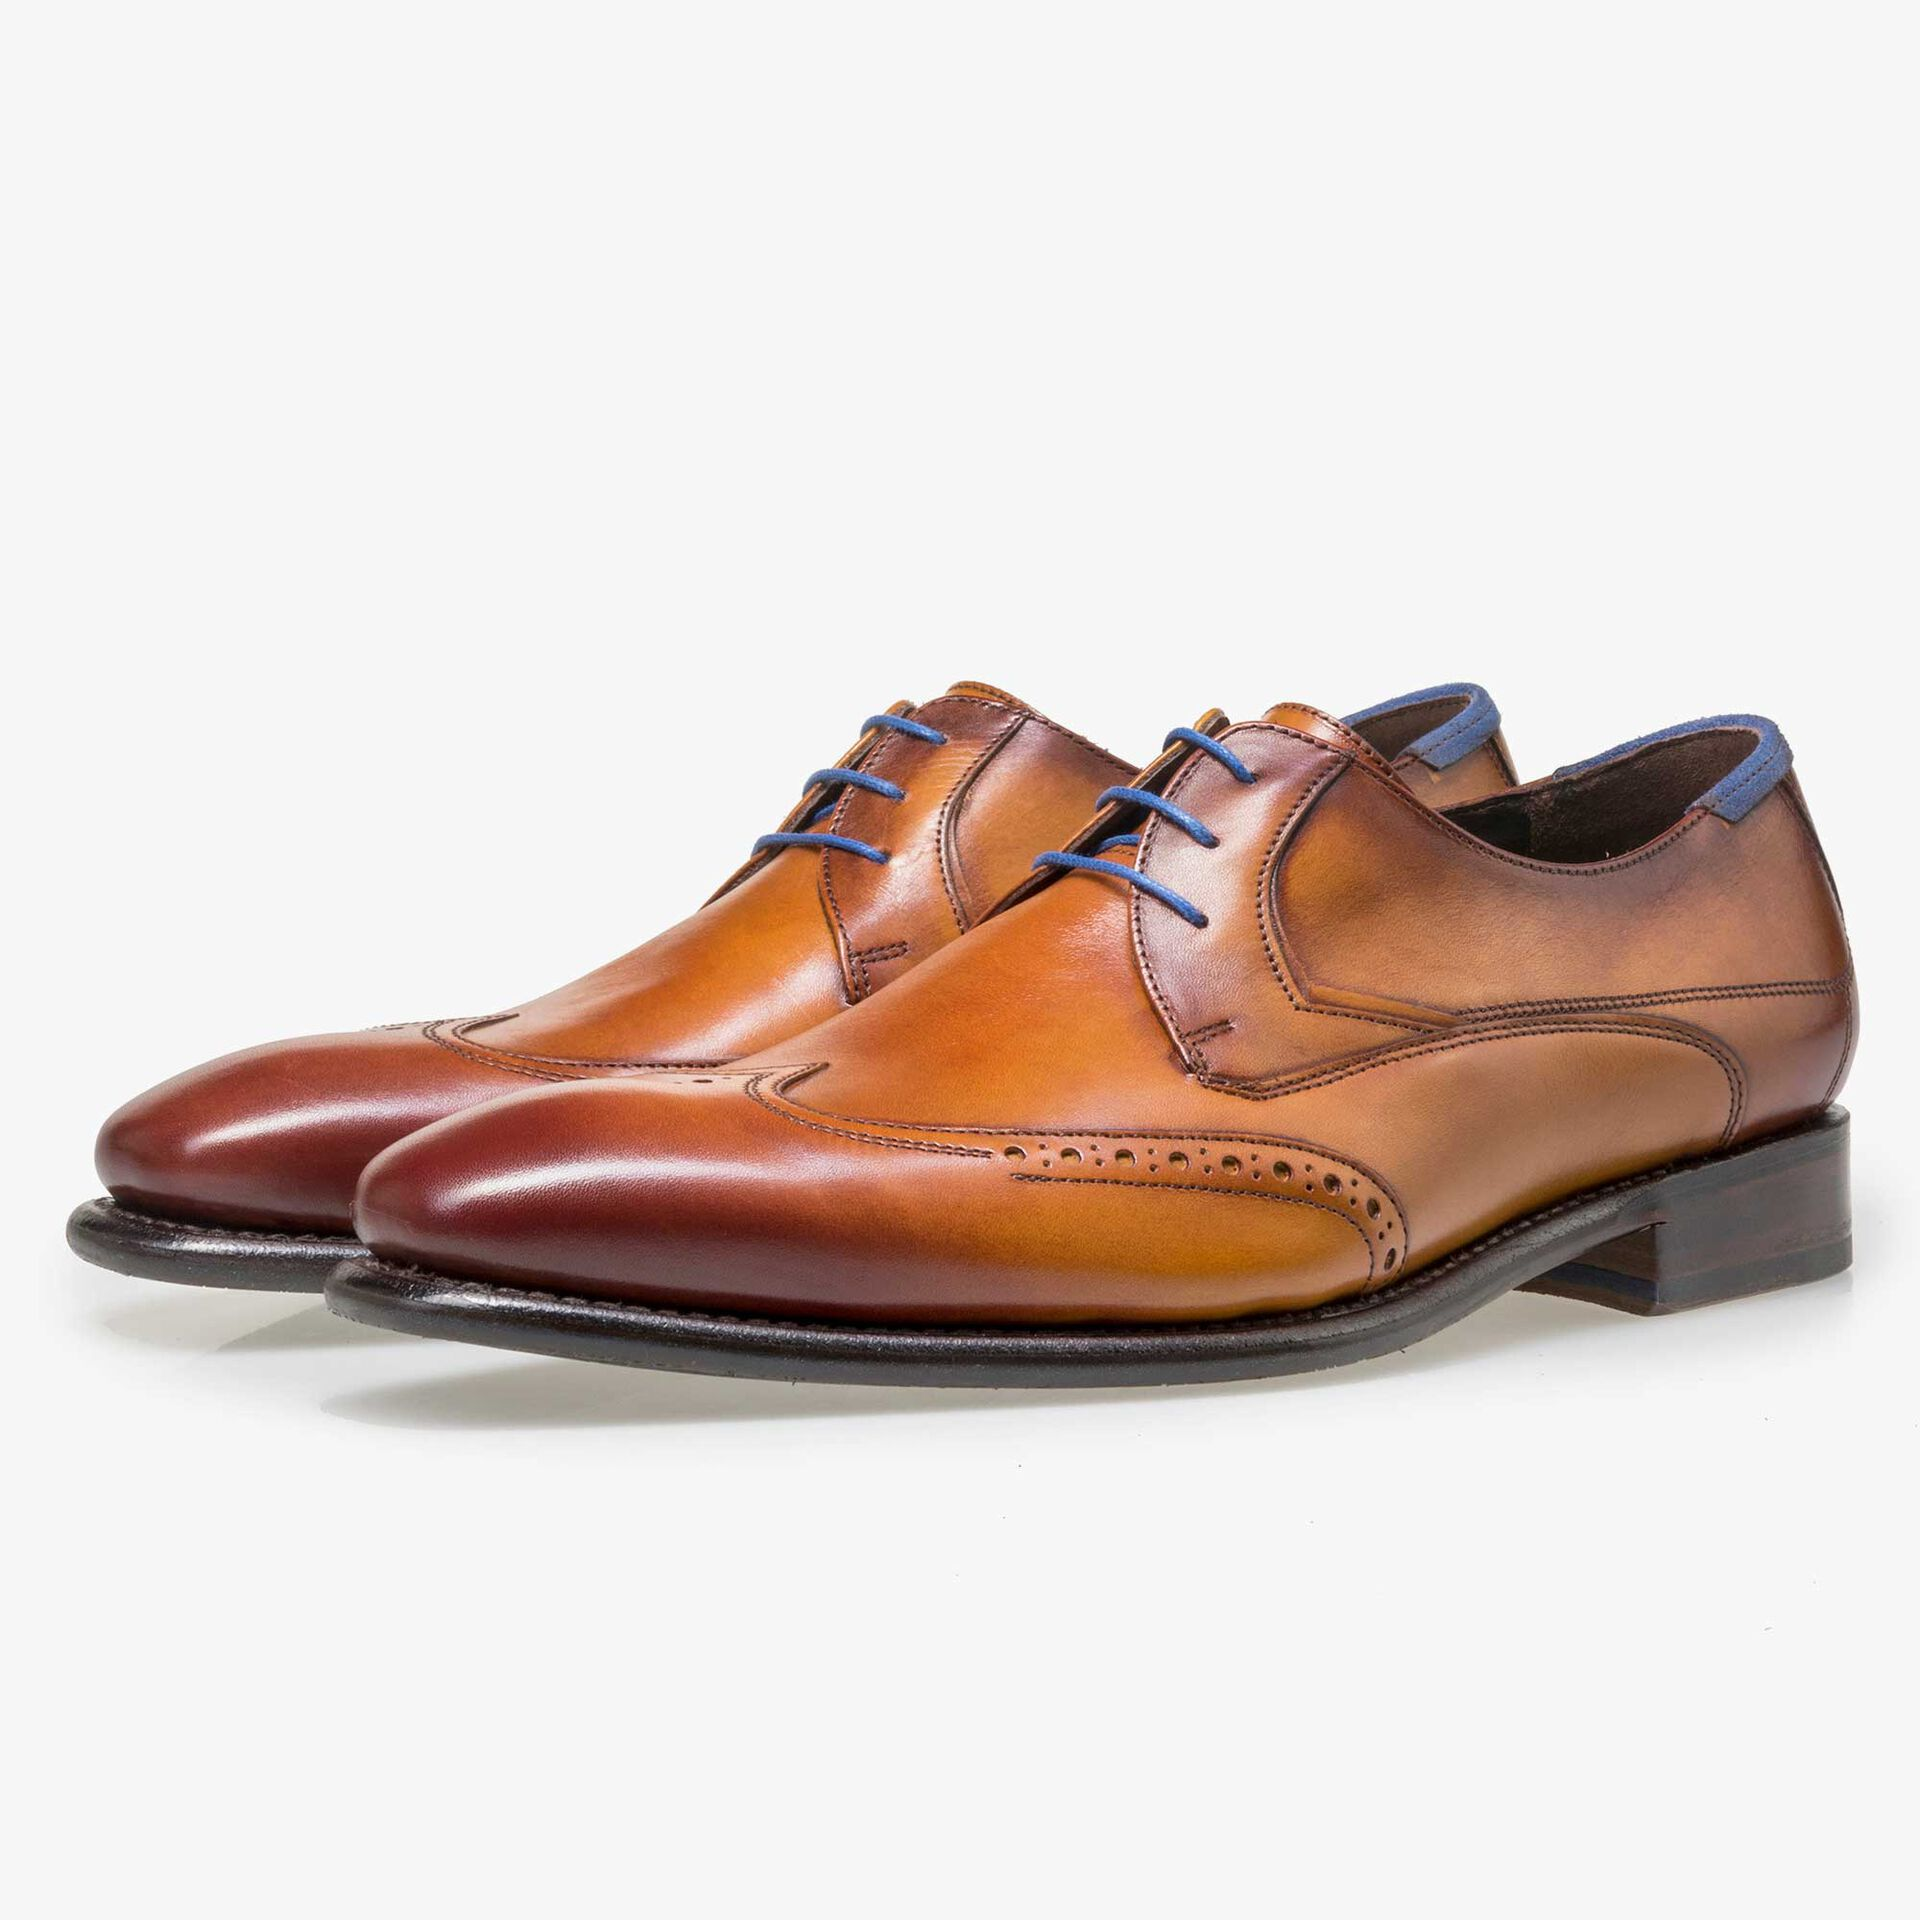 Light cognac-coloured leather lace shoe